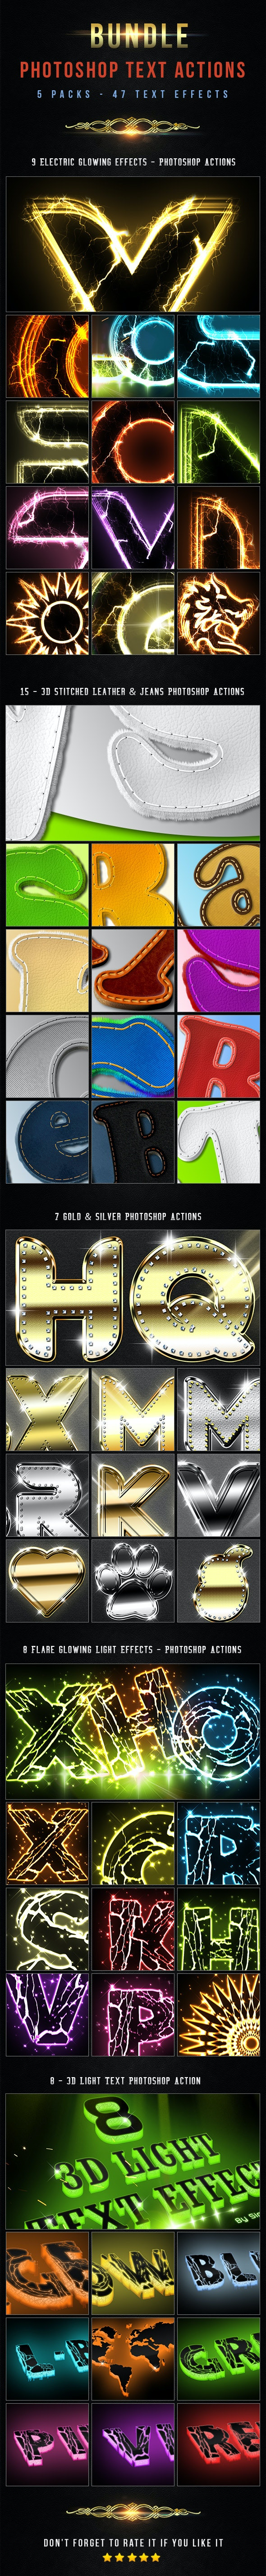 47 Text Photoshop Actions - Bundle 3 - Text Effects Actions